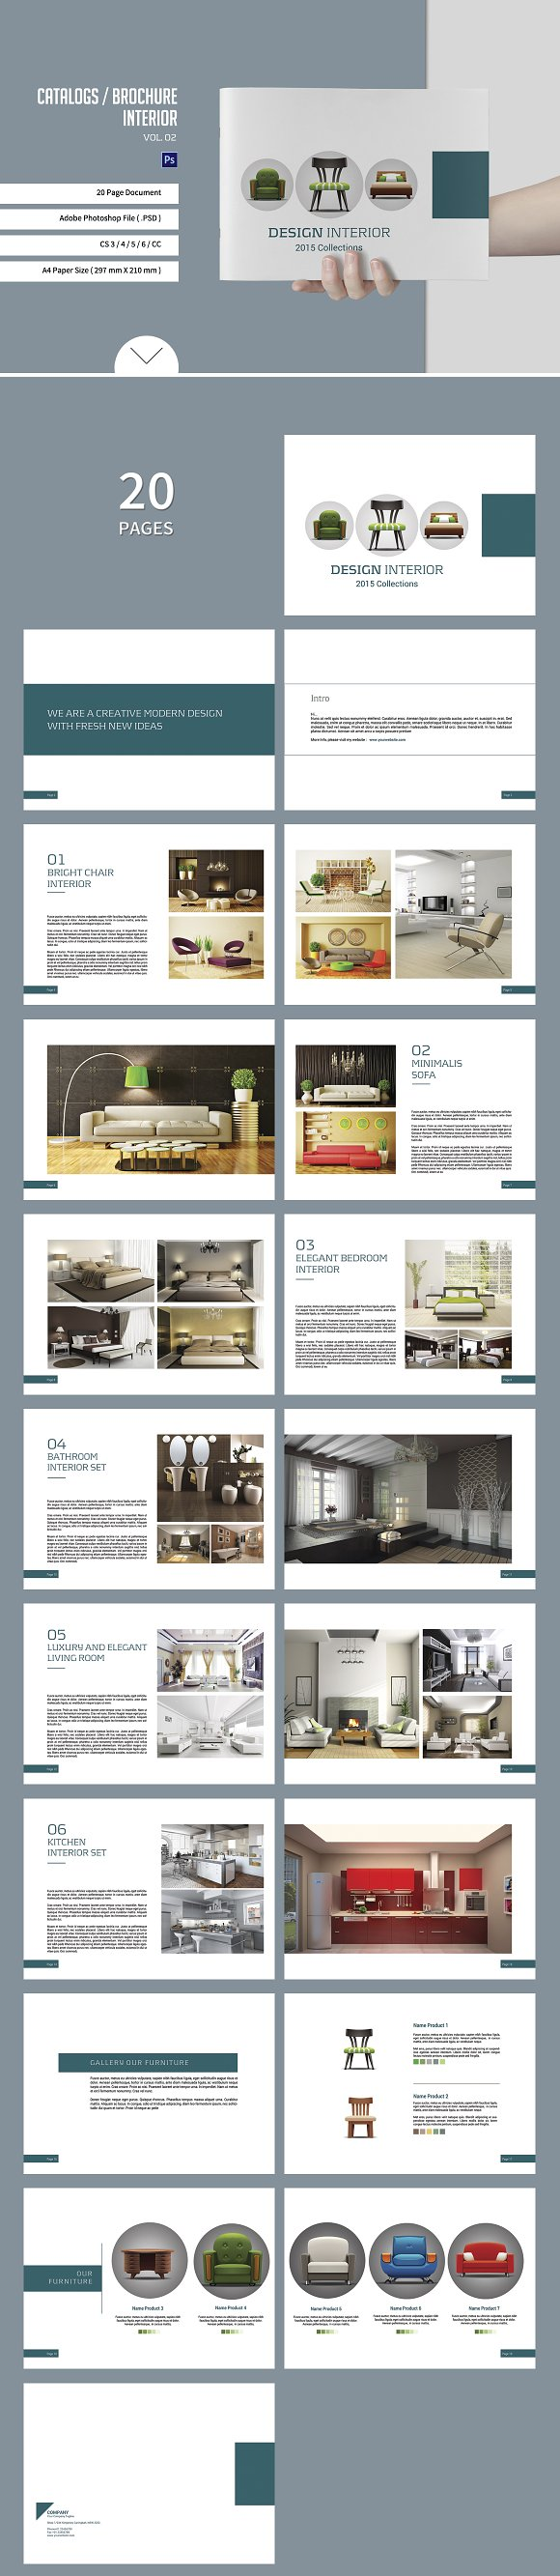 Catalogs / Brochure Interior Vol. 2 - Brochures